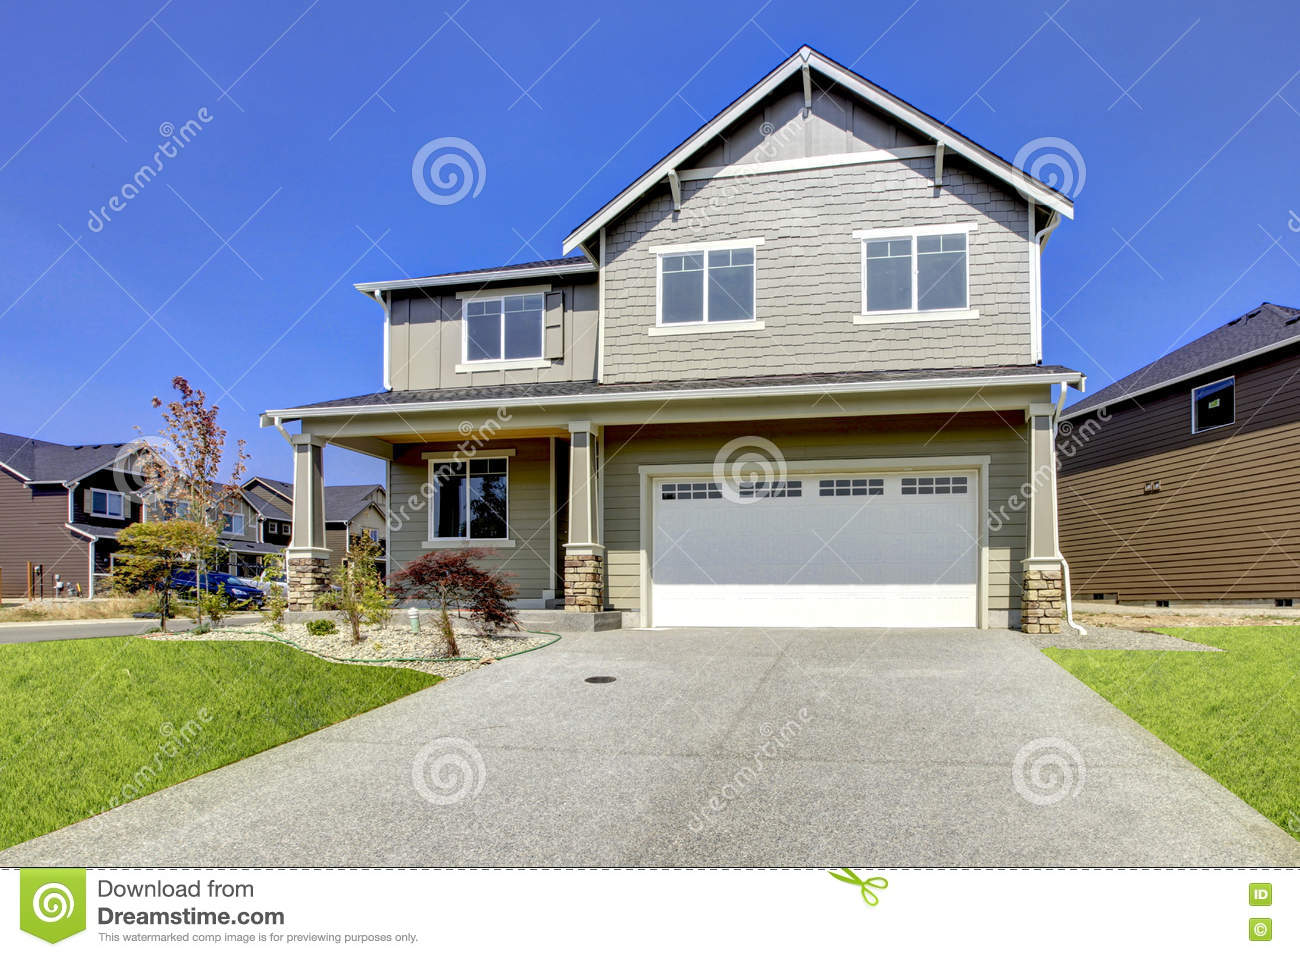 Typical American Northwest Style New Development House Exterior Natural Colors Simple Build 3 4 Bedrooms Homes First Time Home Owners Great Deal